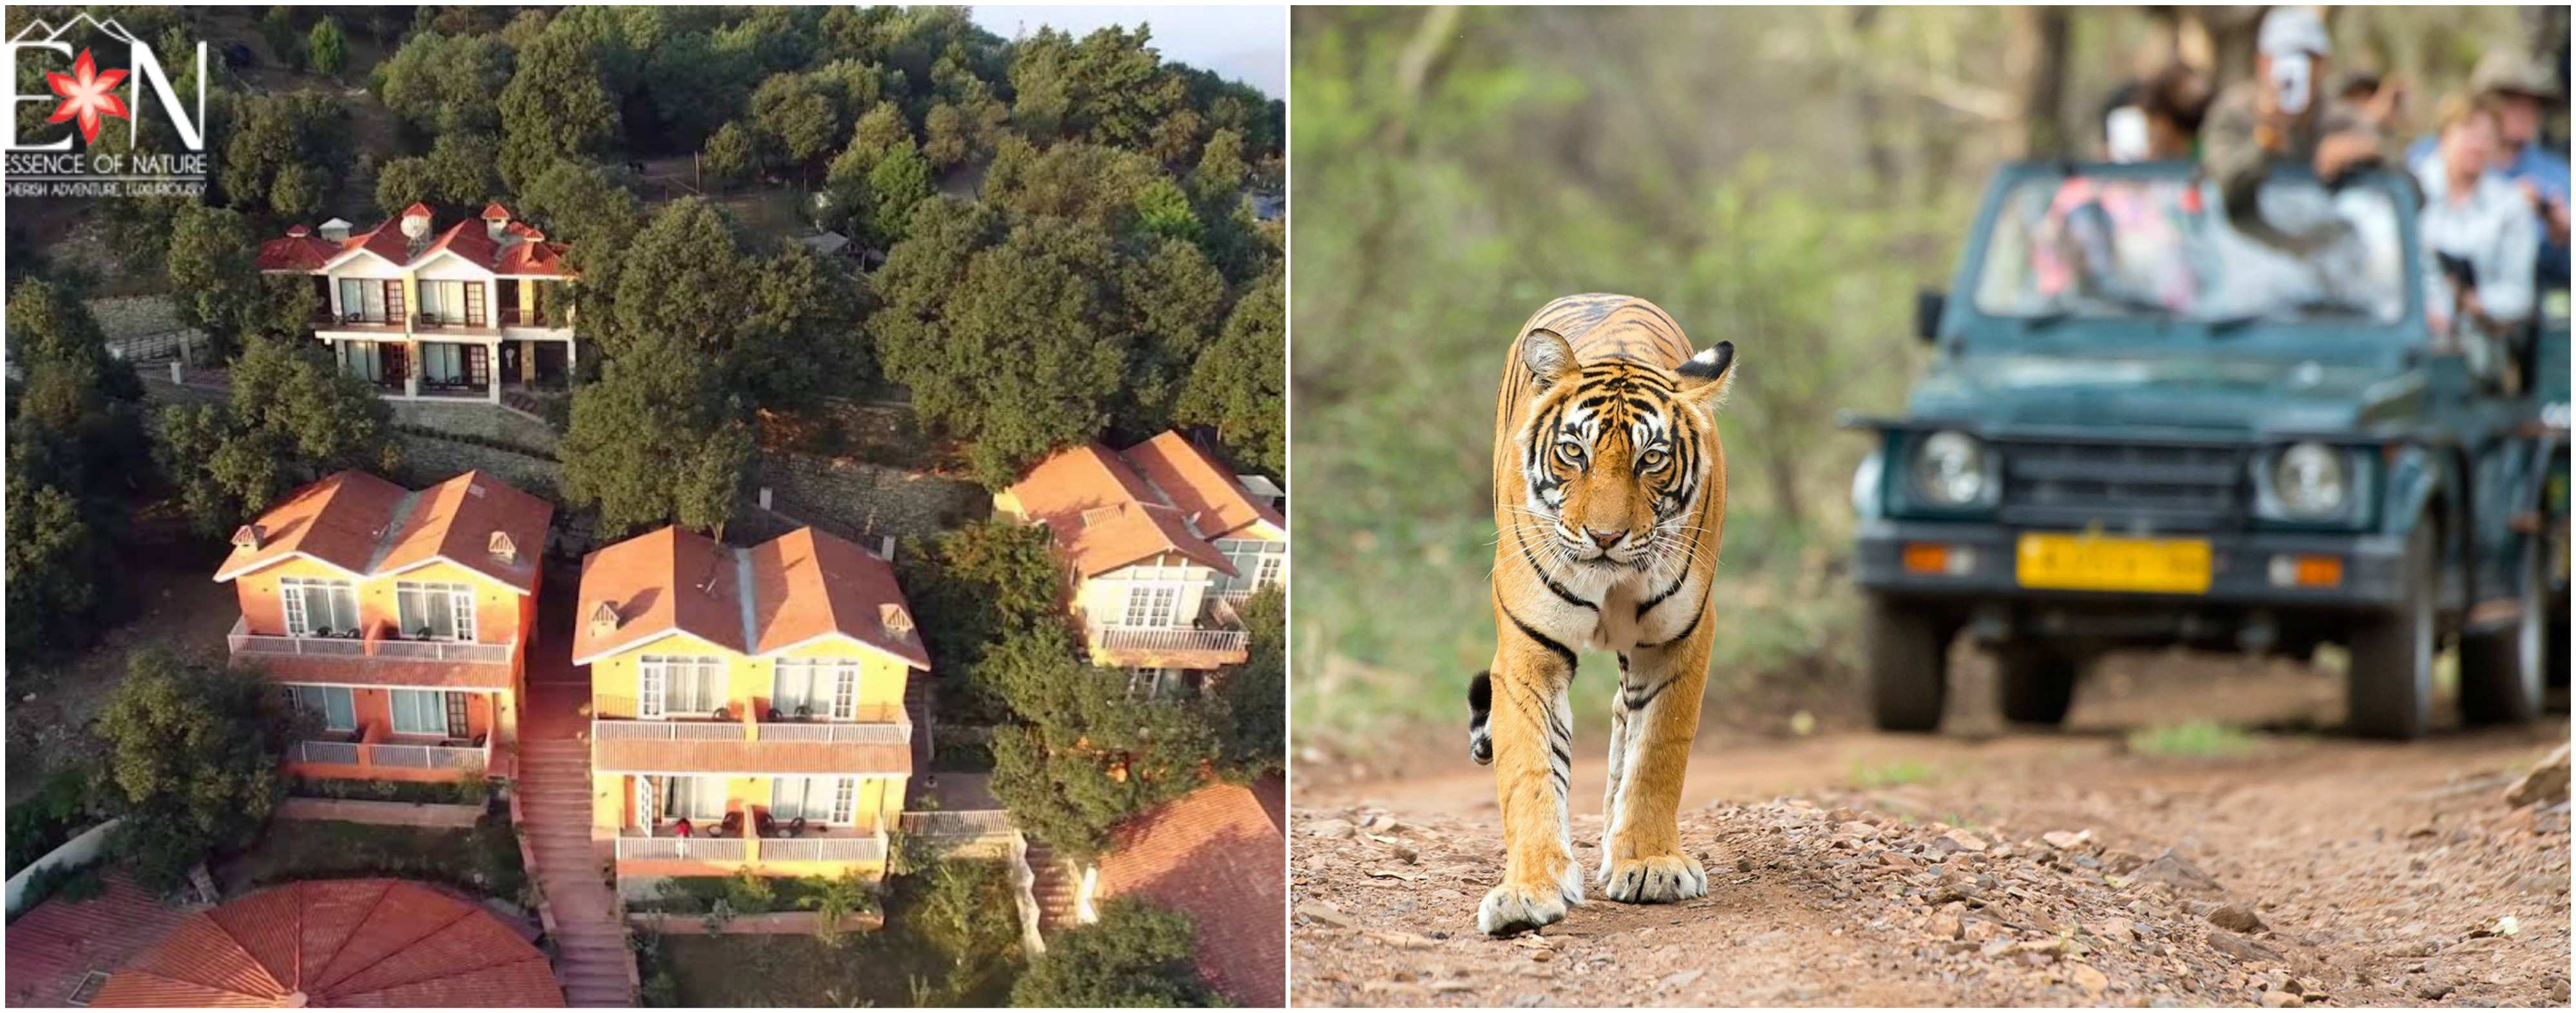 Explore Jim Corbett with EoN Club